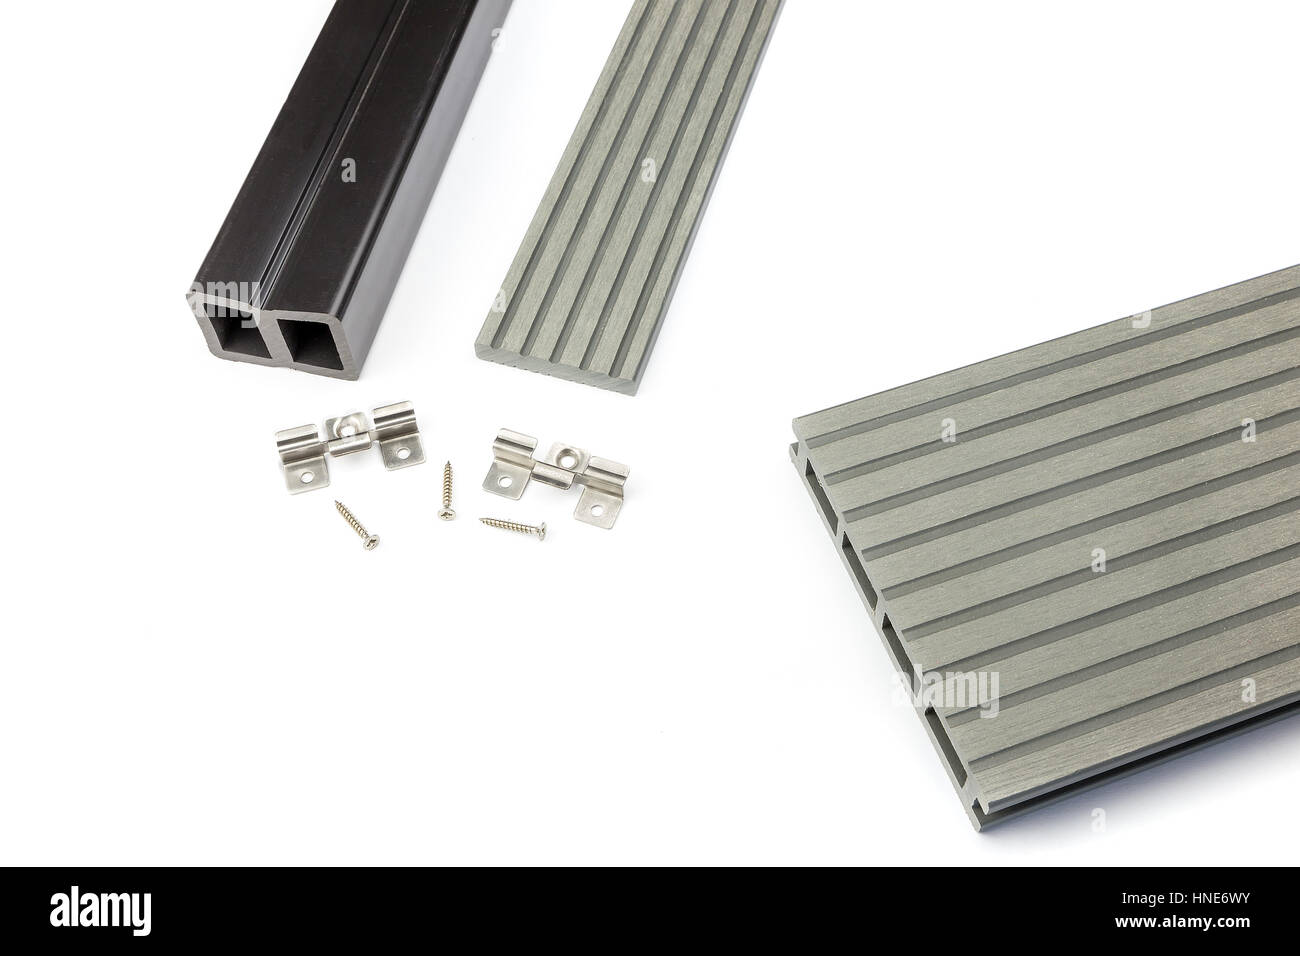 Light grey composite decking plank with fastening material - Stock Image